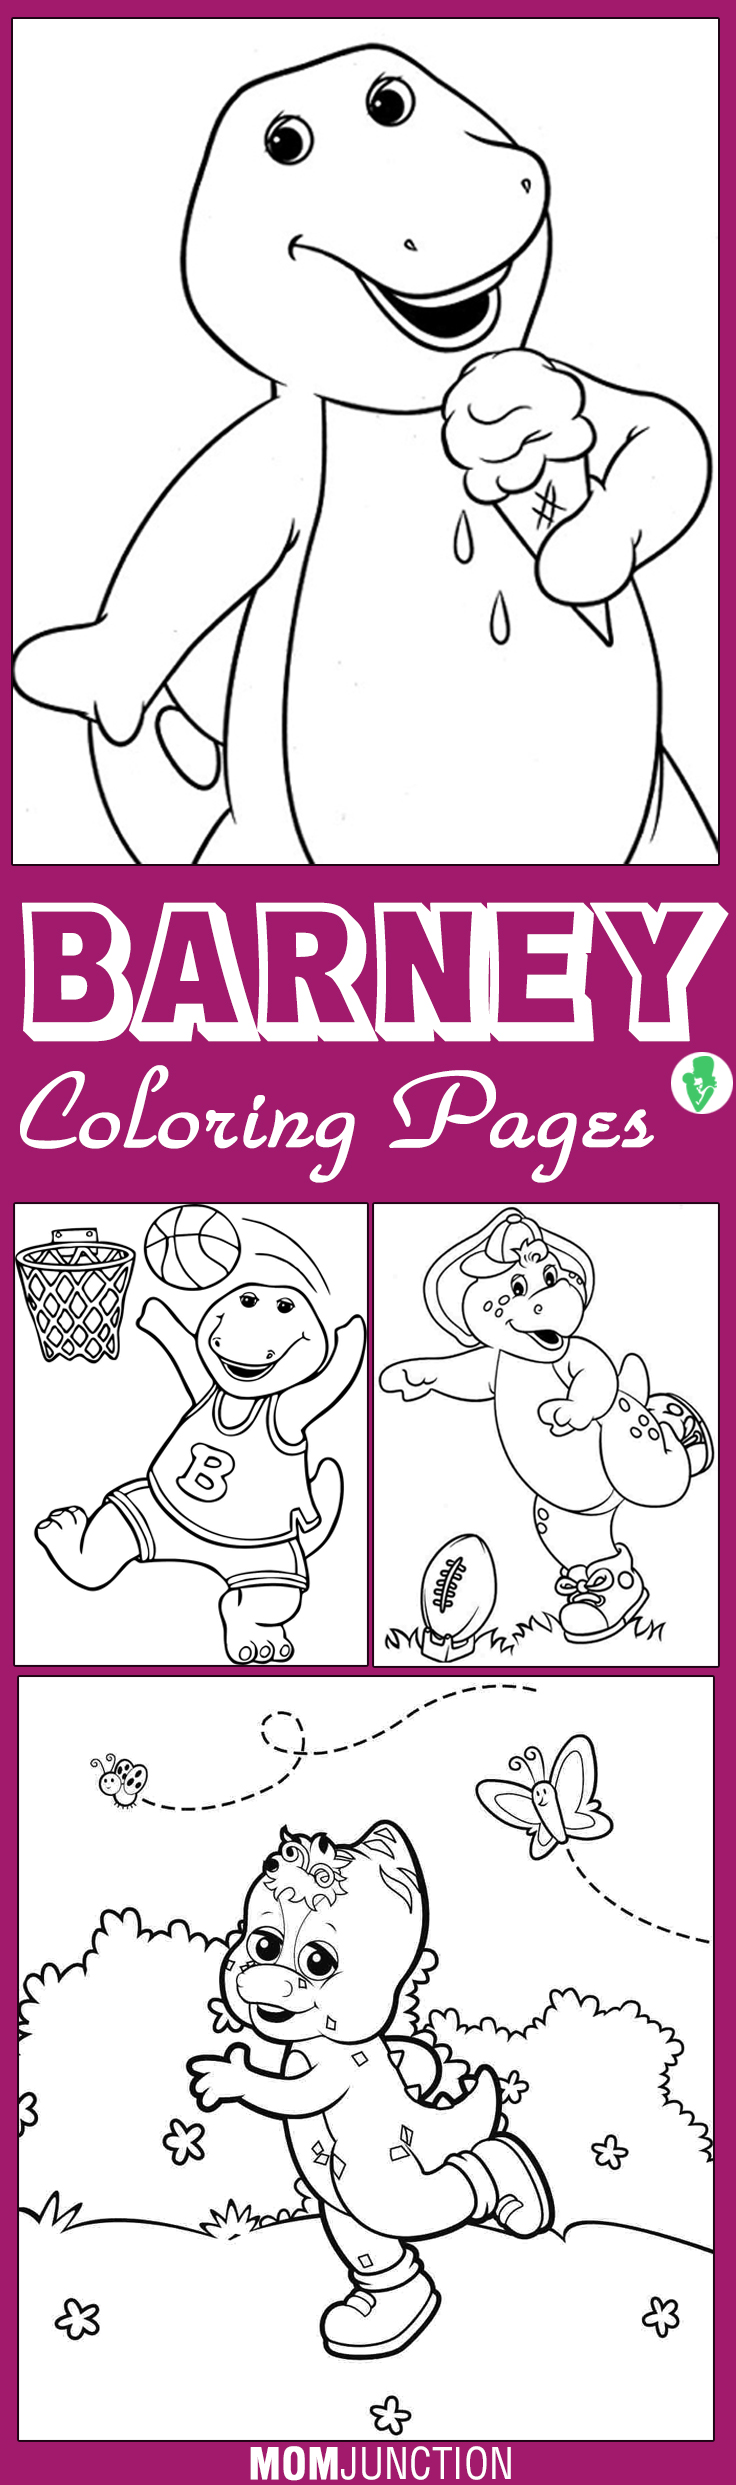 top 10 free printable barney coloring pages online